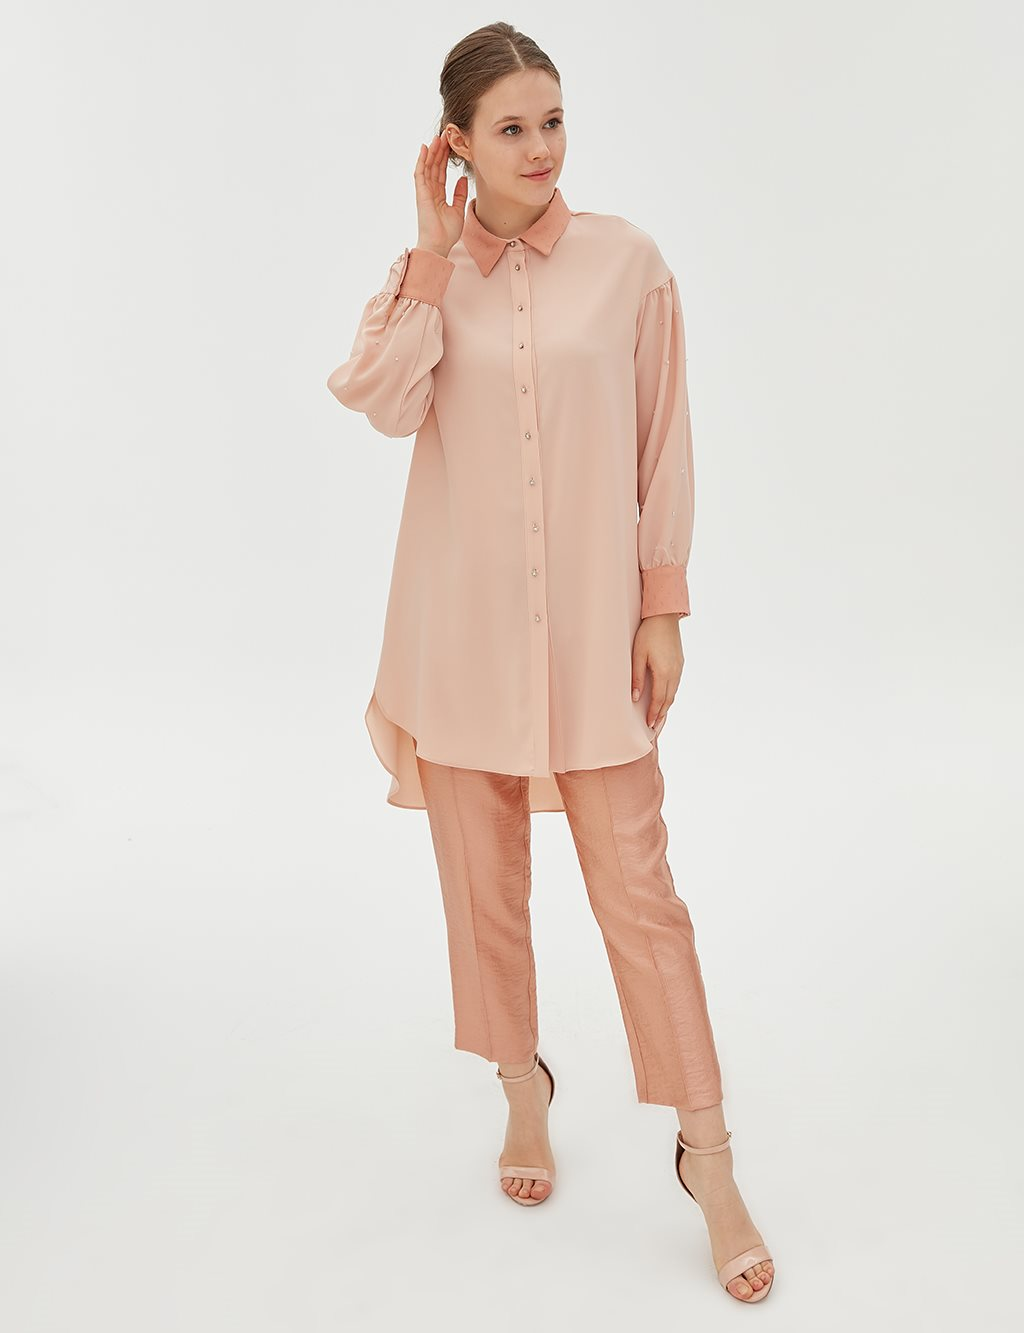 Button Detailed Tunic B20 21077 Powder